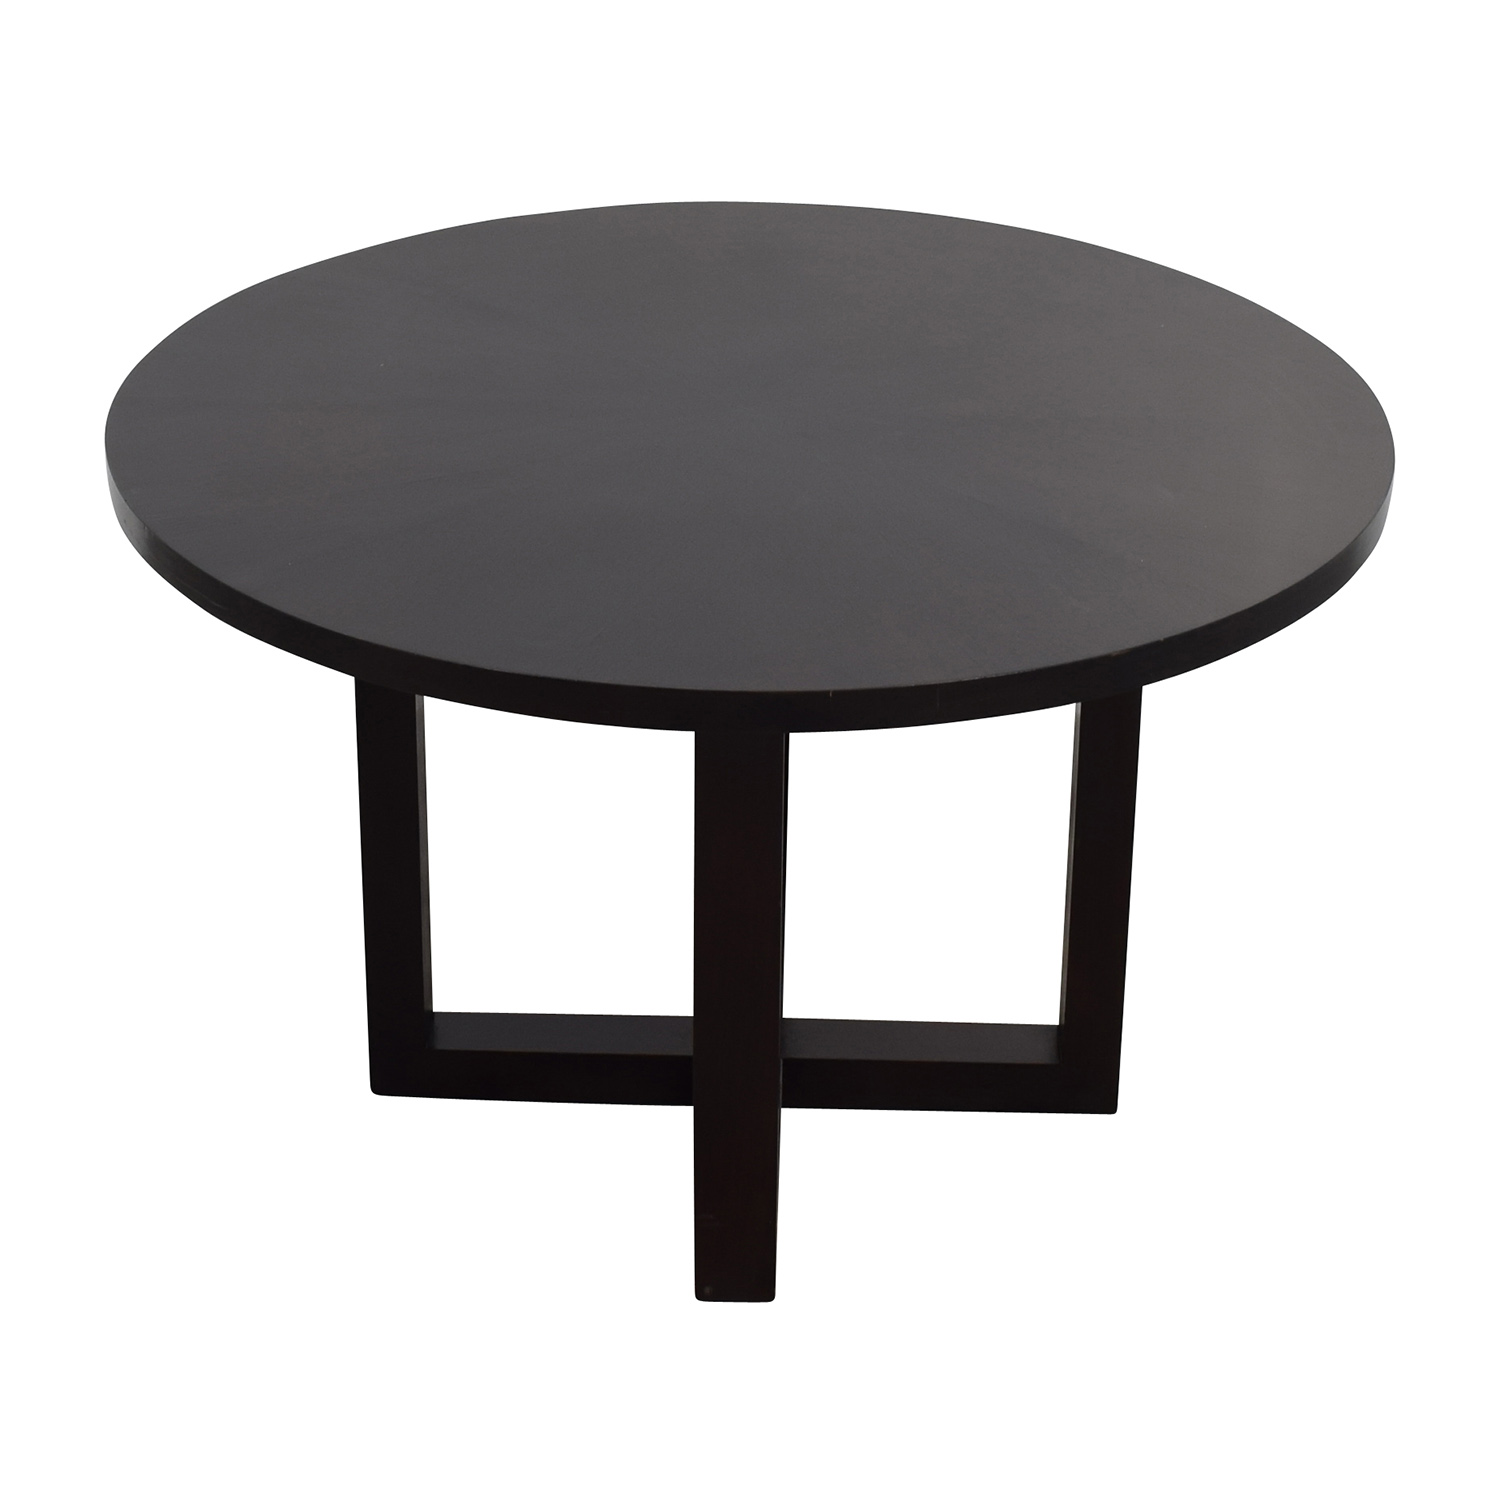 Pictures Of Dinner Tables dinner tables: used dinner tables for sale